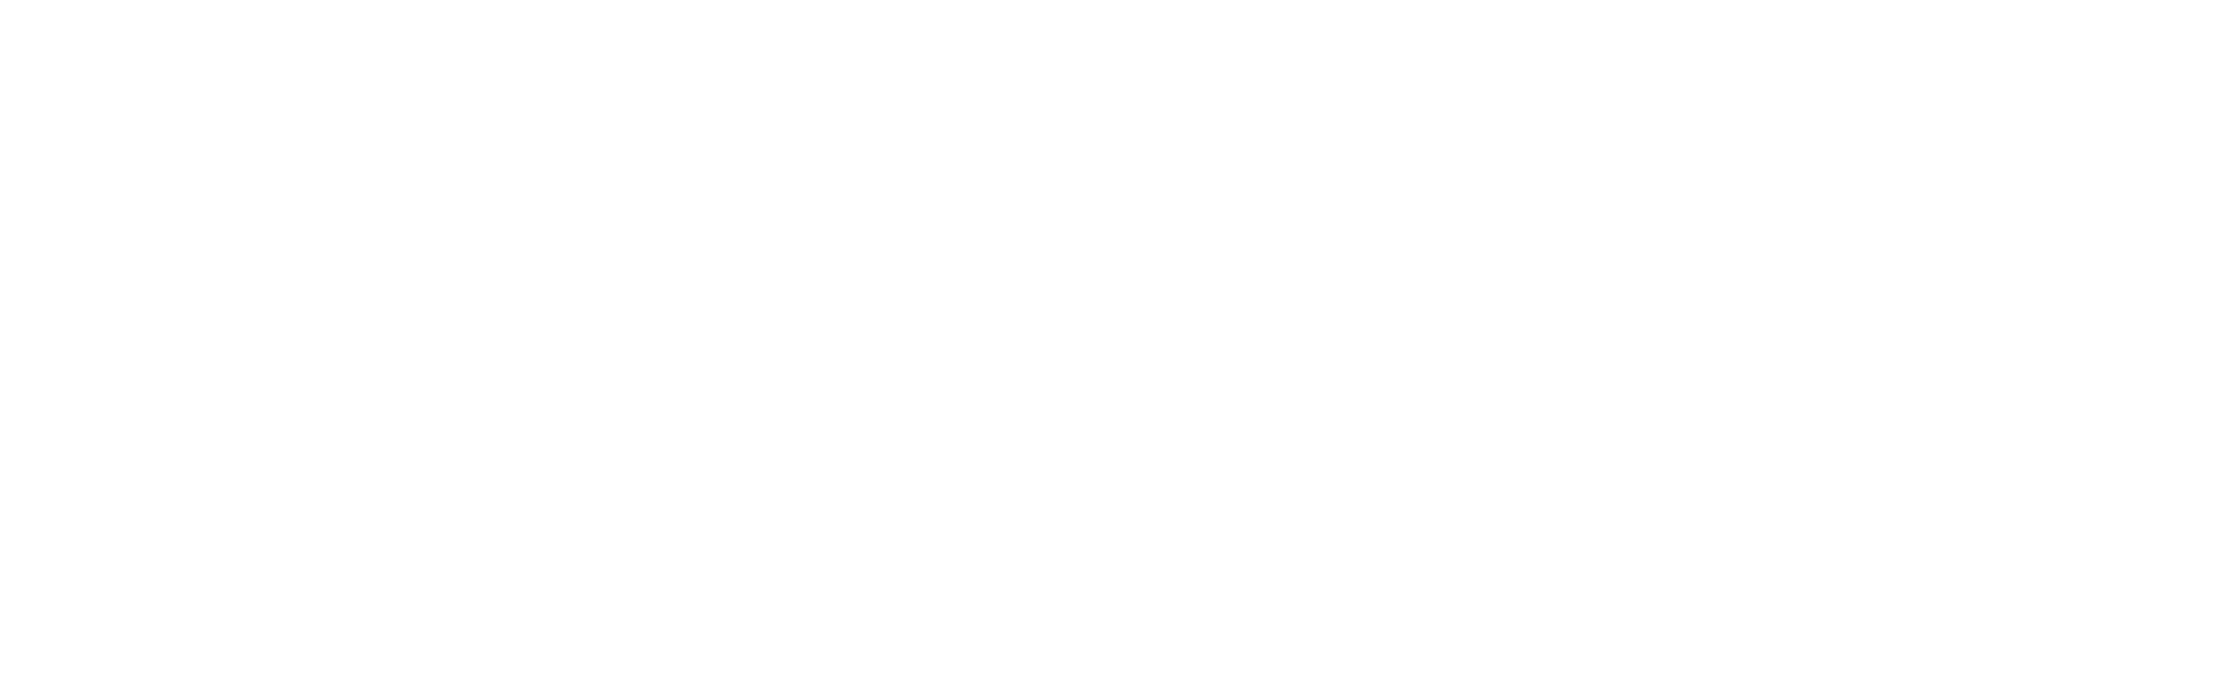 Applied Product Solutions